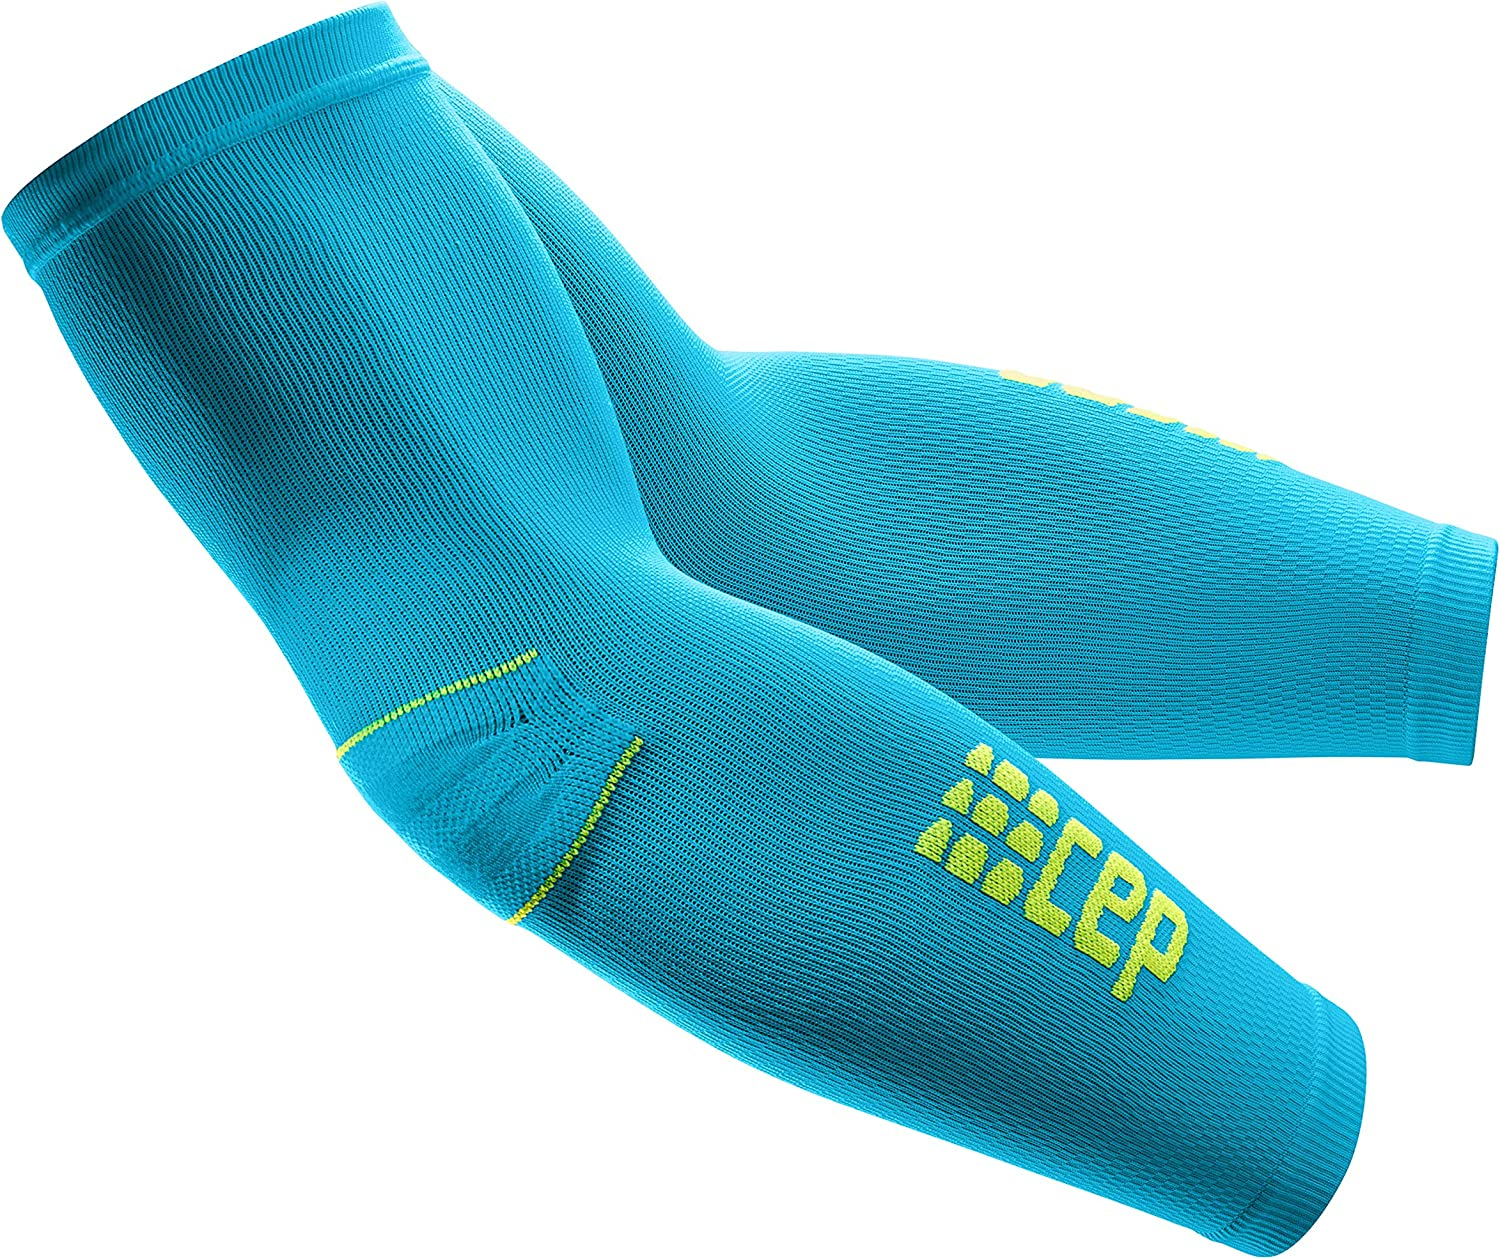 Elbow Support Compression Sleeves, Men & Women - CEP Arm Sleeves (Pair)